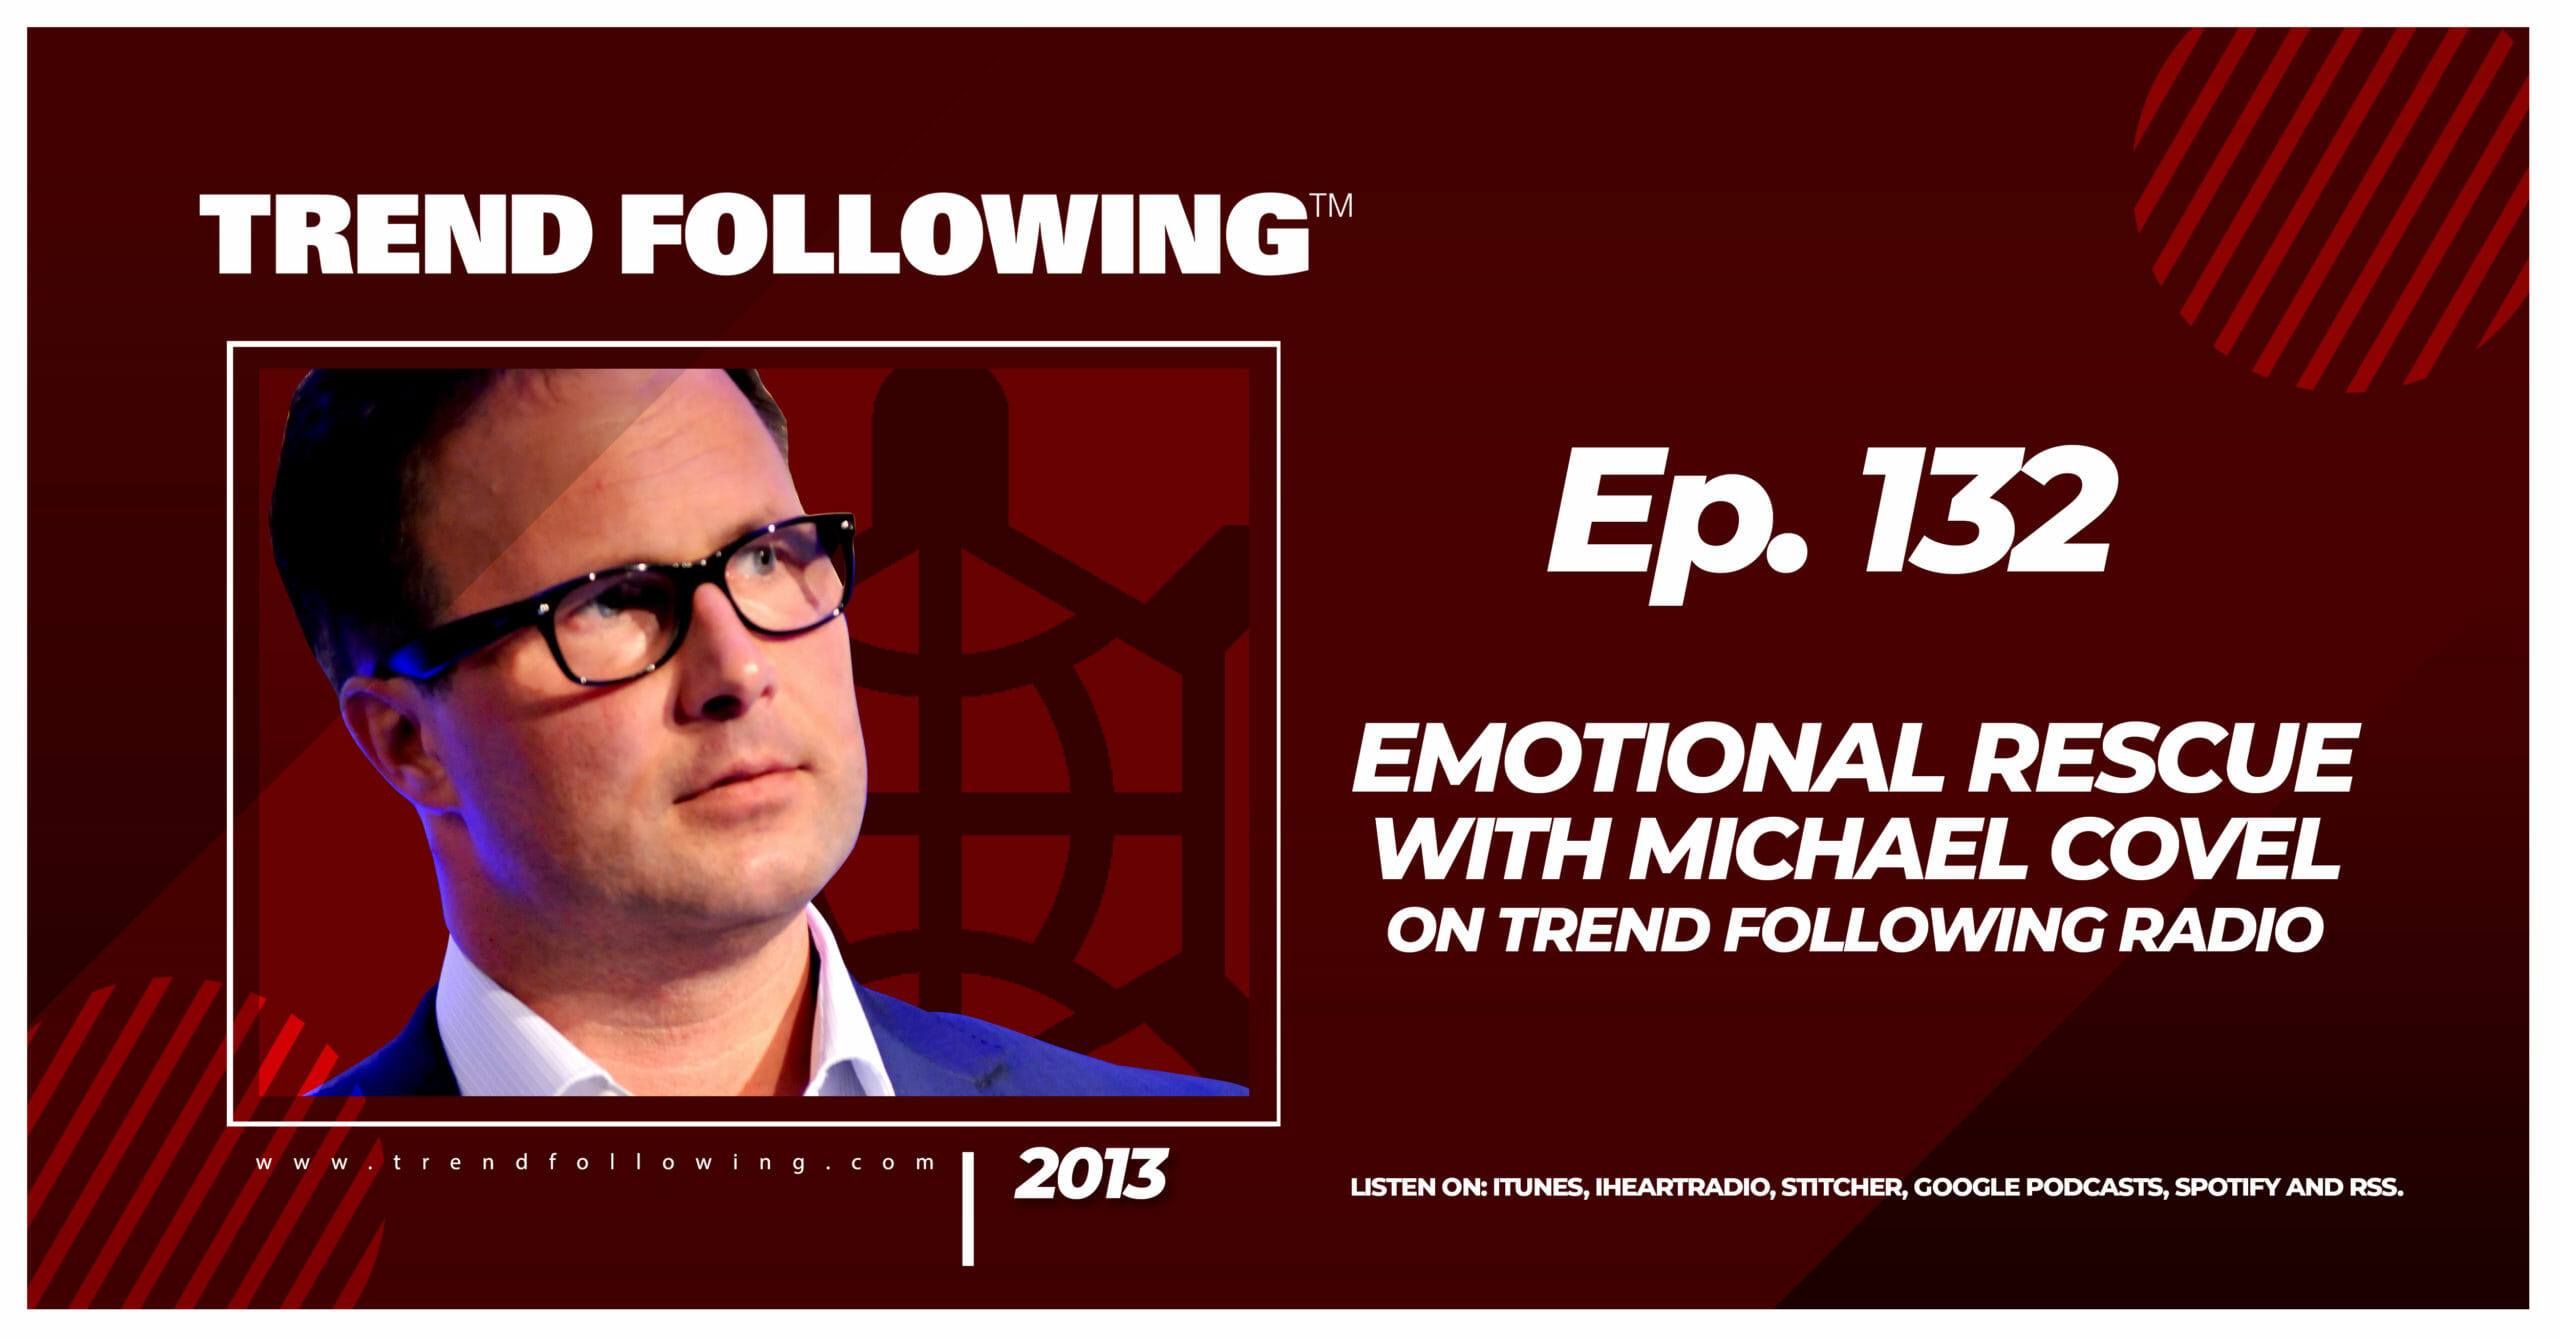 Emotional Rescue with Michael Covel on Trend Following Radio